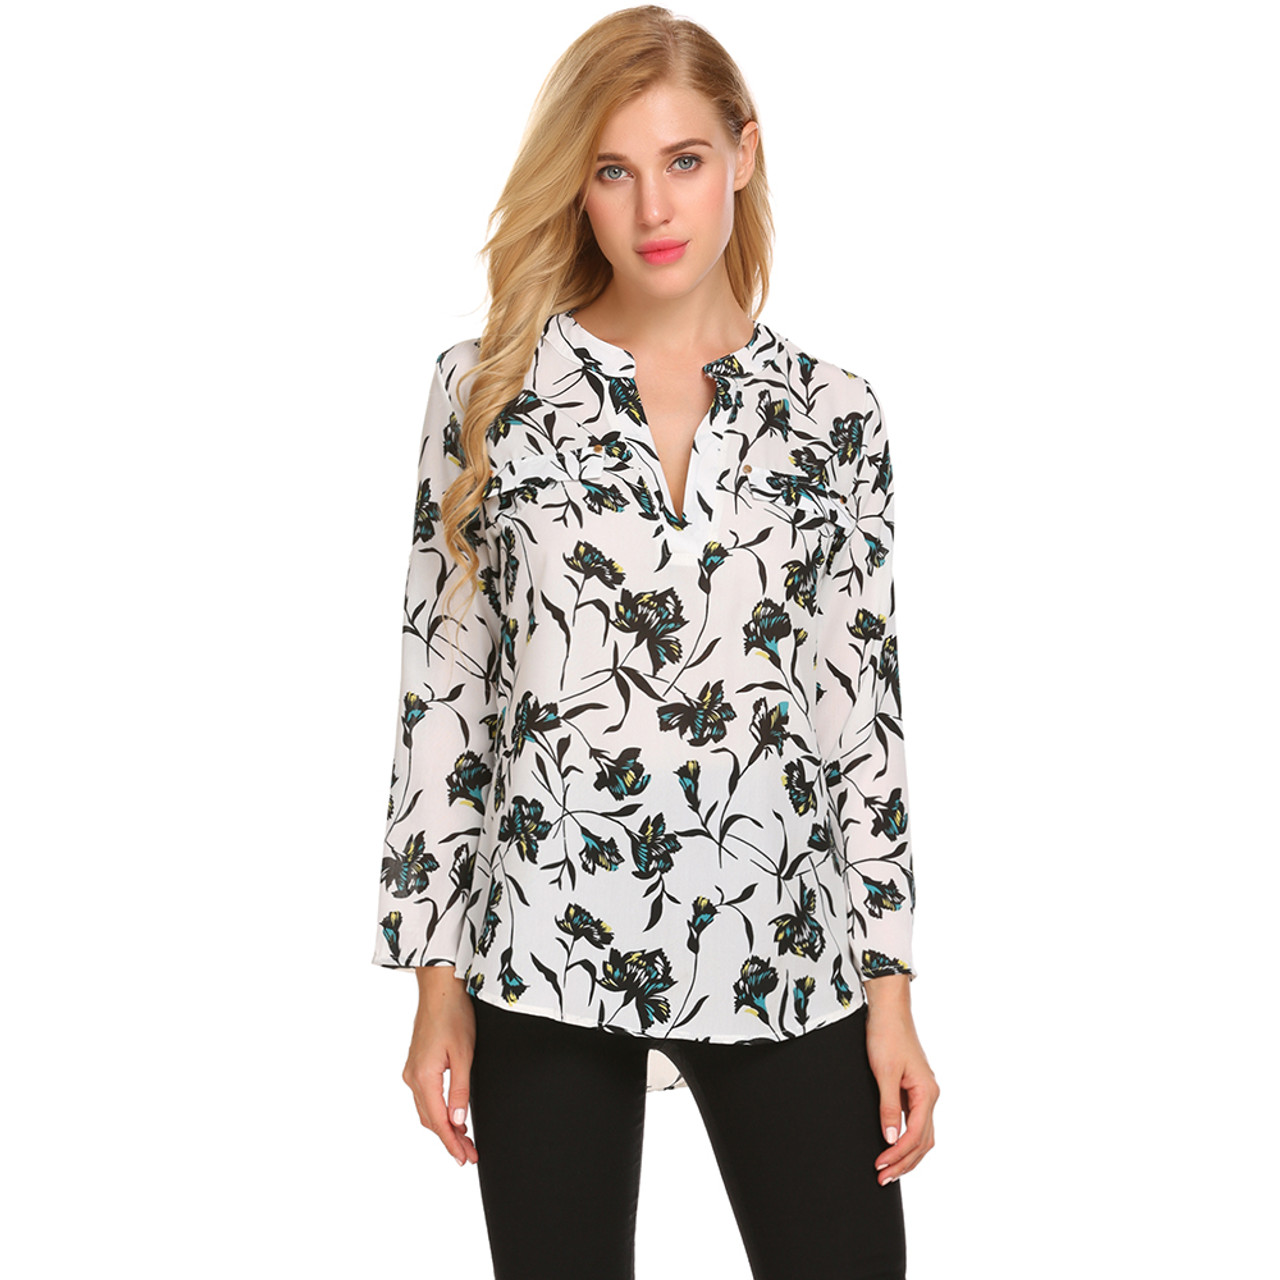 c0d20e42 ... Meaneor Vintage Blouses Women Roll-Up Cuffed Sleeve Shirts Floral Print  Asymmetrical Blouse Casual V ...